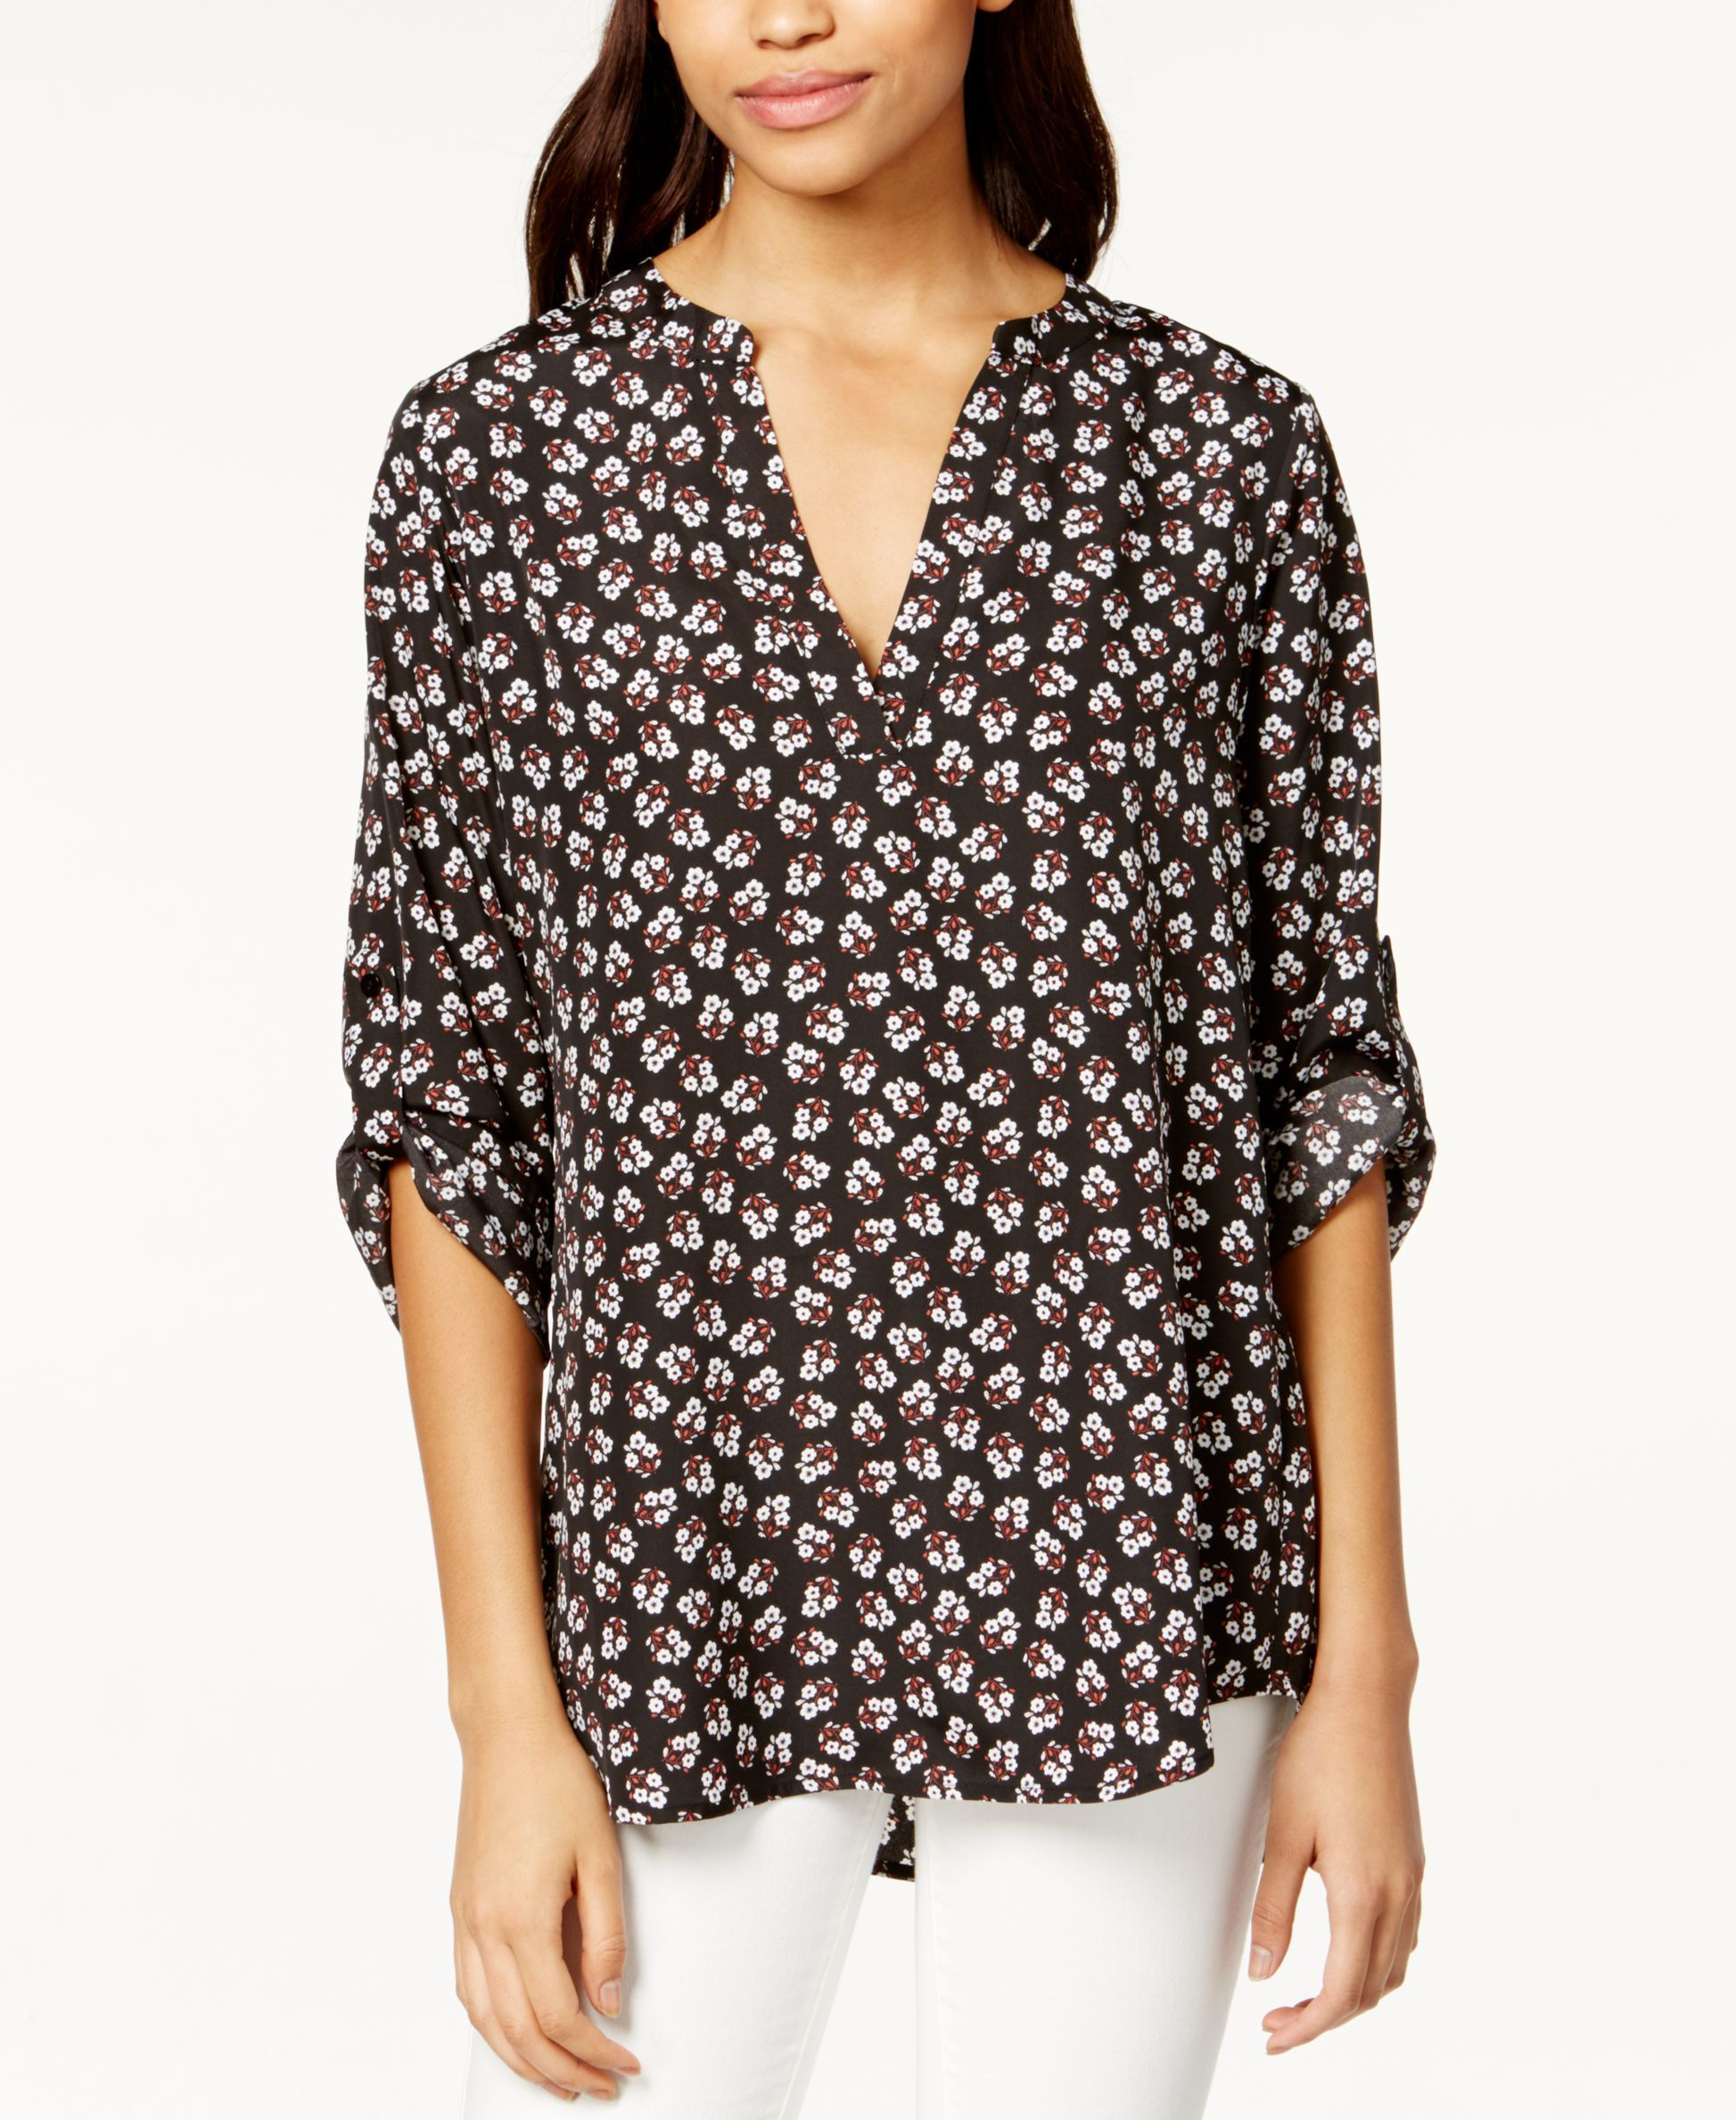 1dbb3876 Maison Jules Roll-Tab-Sleeve Floral-Print Blouse, Only at Macy's ...